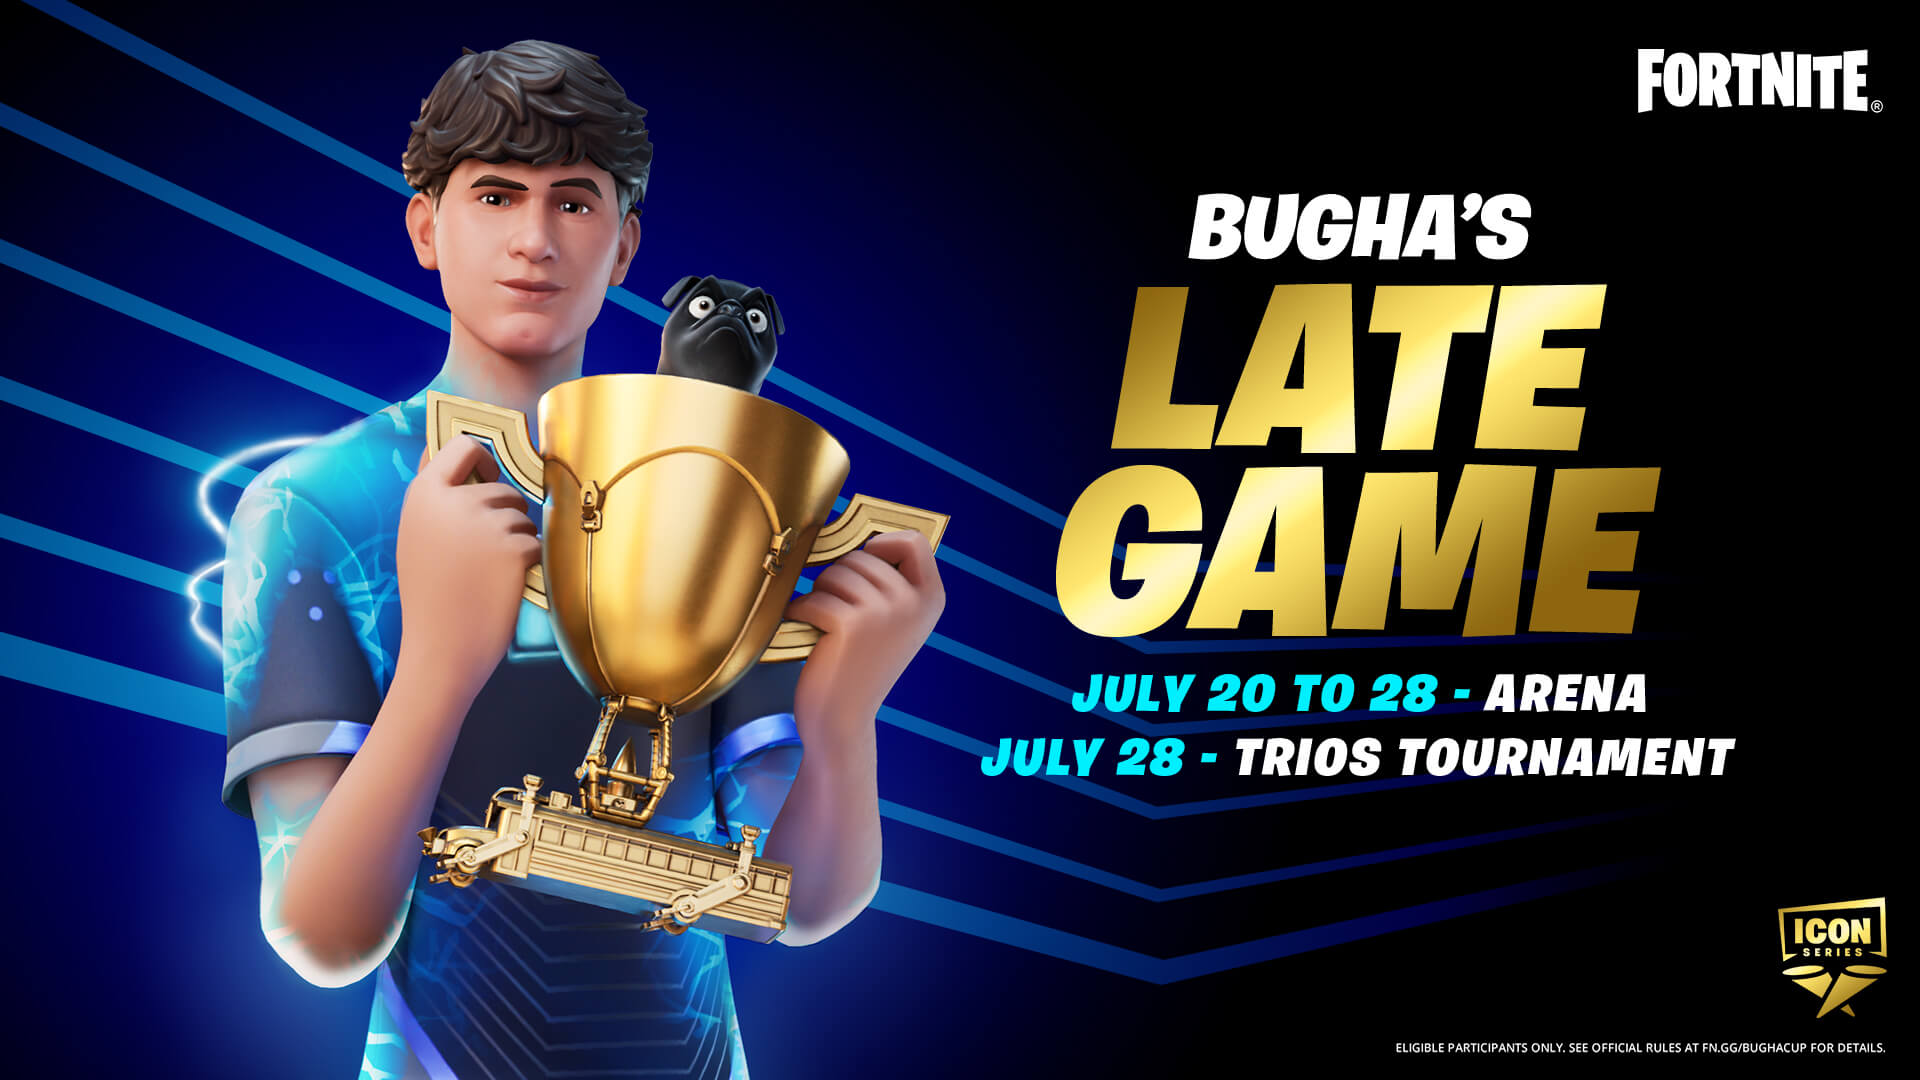 Fortnite Bugha's Late Game Arena and Tournament